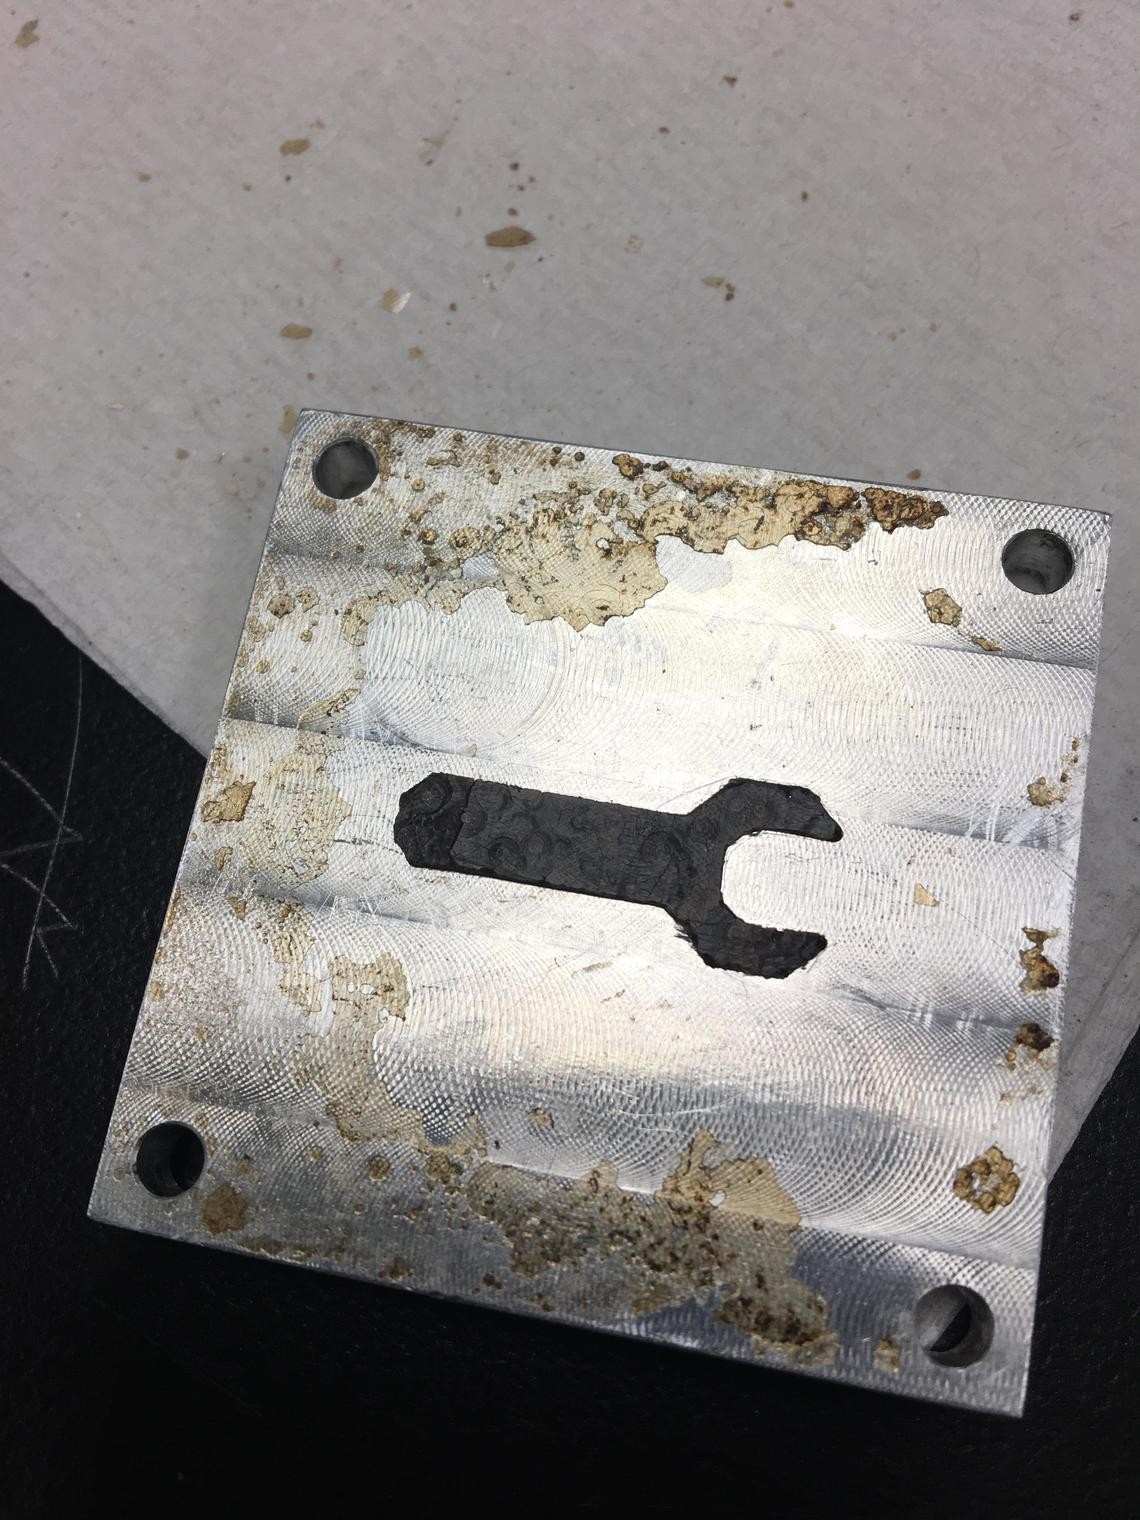 A sample wrench, made out of simulated human waste